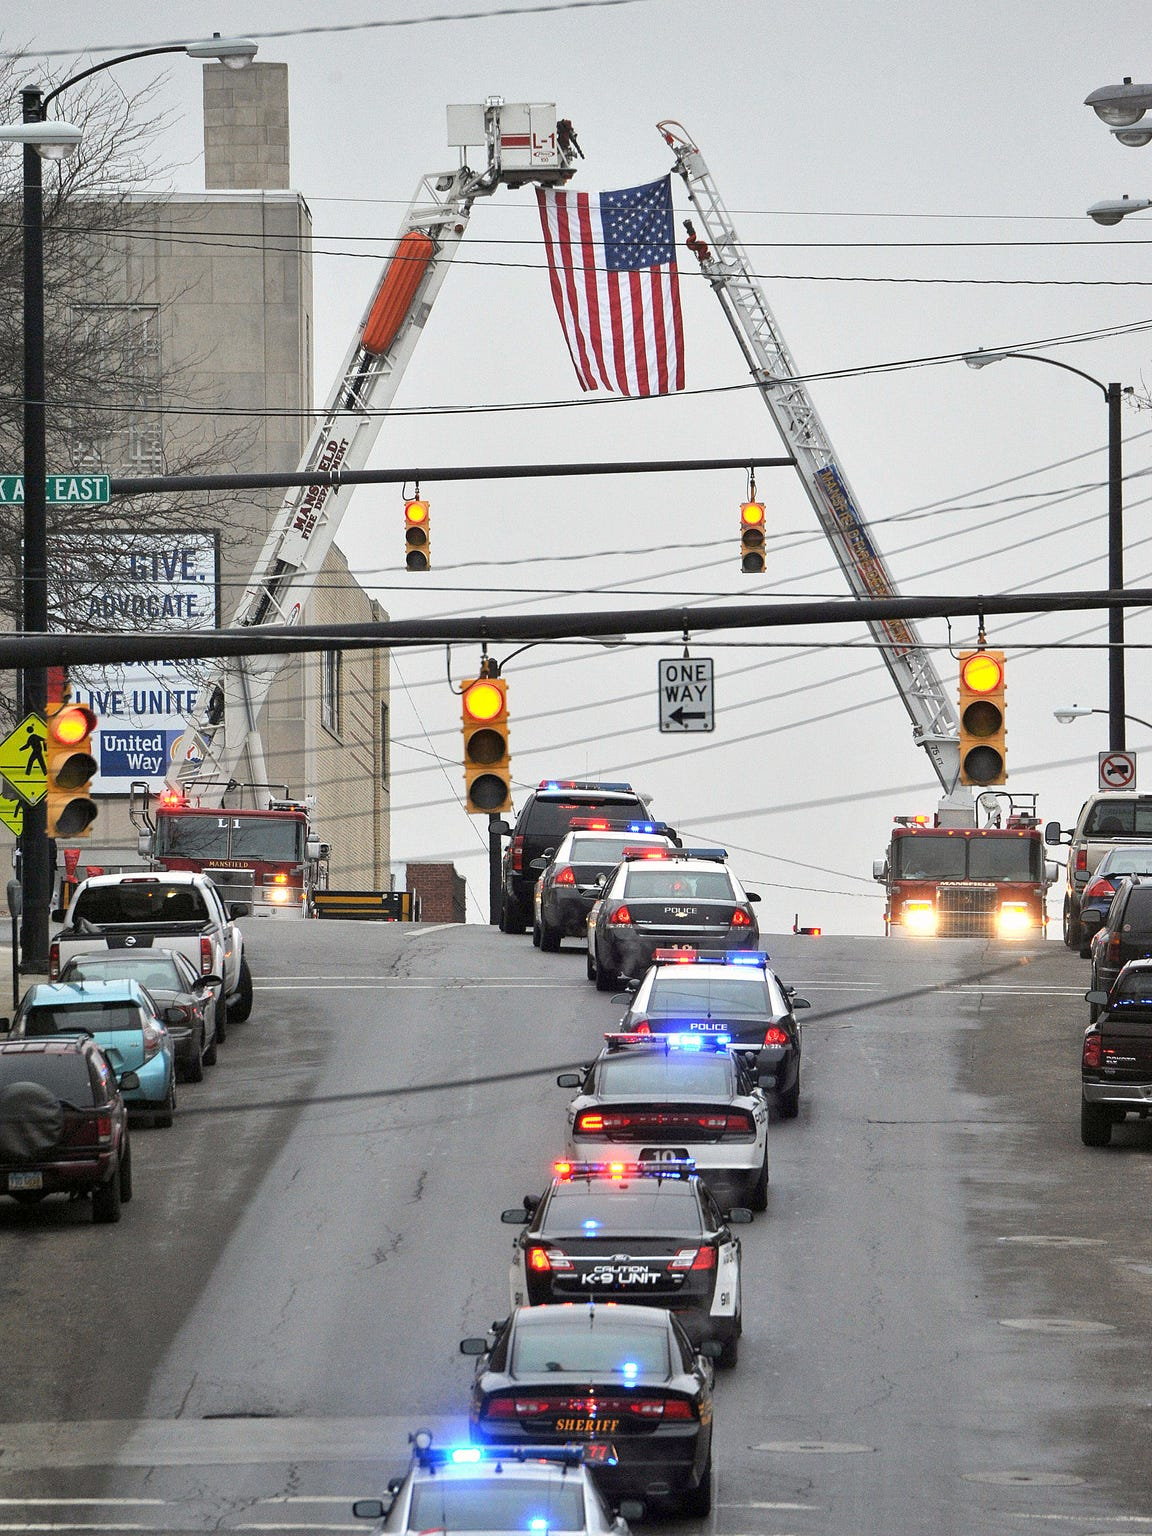 The Mansfield Fire Department hangs a flag at the intersection